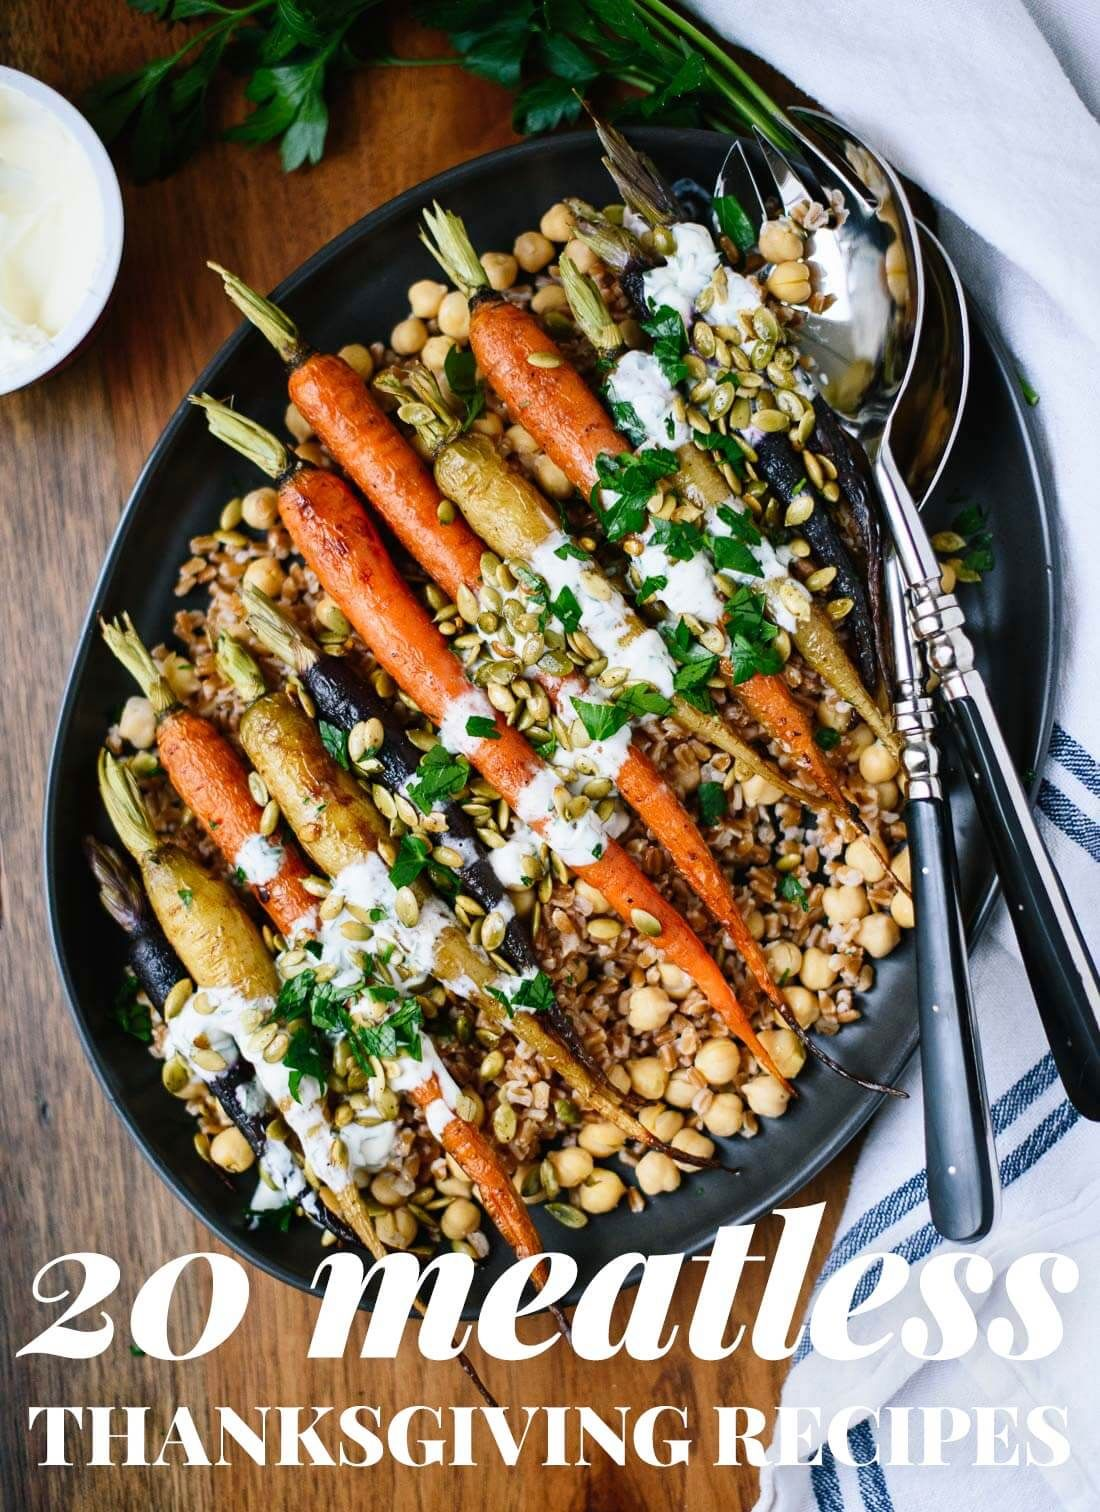 Communication on this topic: 20 Vegan Thanksgiving Recipes That Don'tSuck, 20-vegan-thanksgiving-recipes-that-dontsuck/